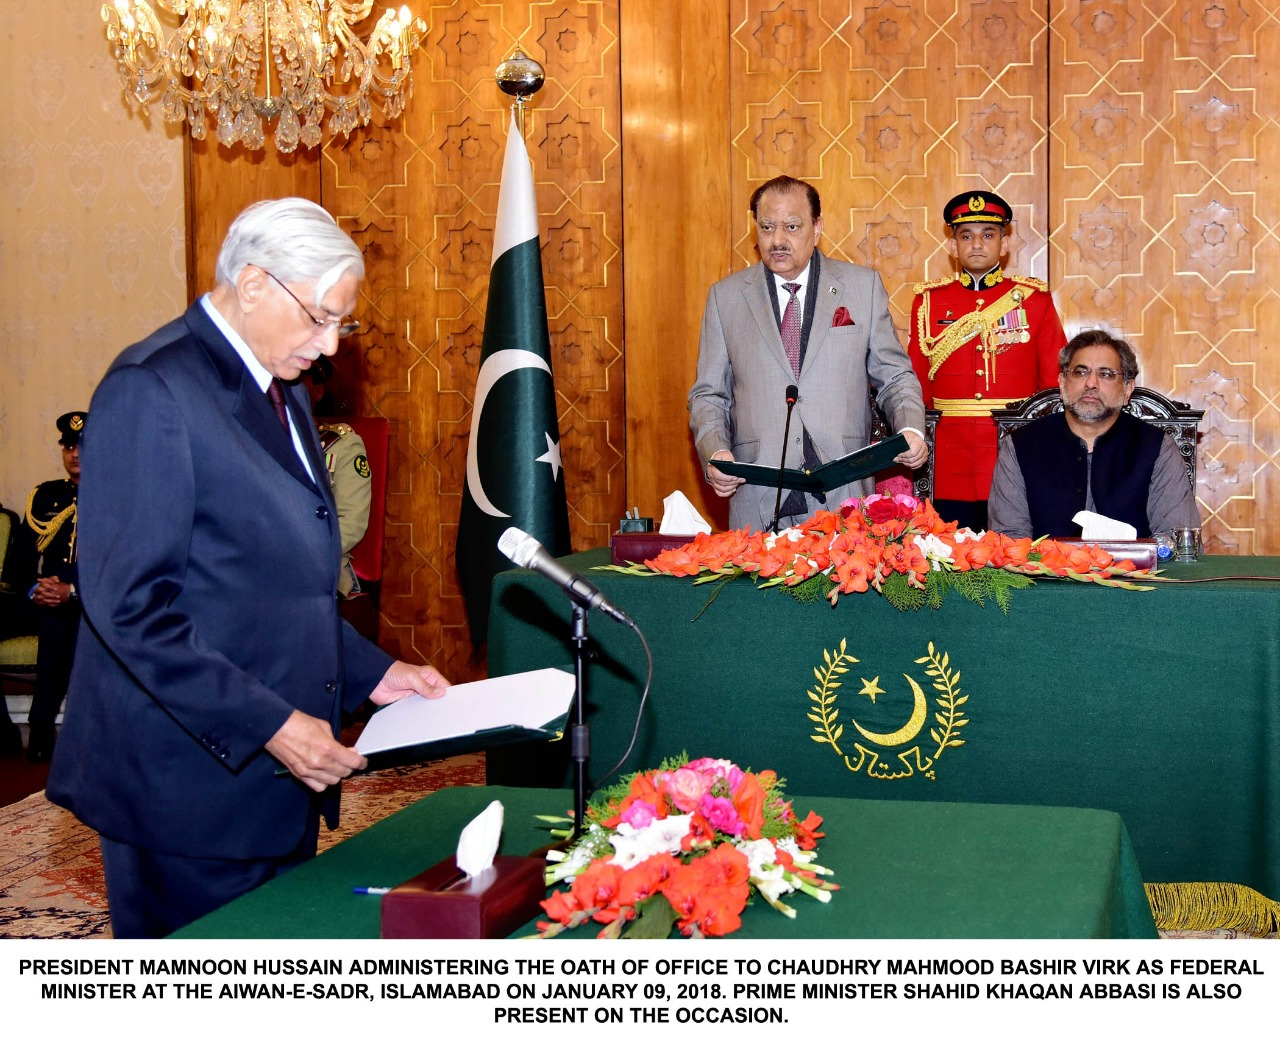 President, Mamnoon Hussain ,administered,oath, of, office, to ,MNA, Chaudhry Mahmood Bashir, Virk, as, Federal Minister